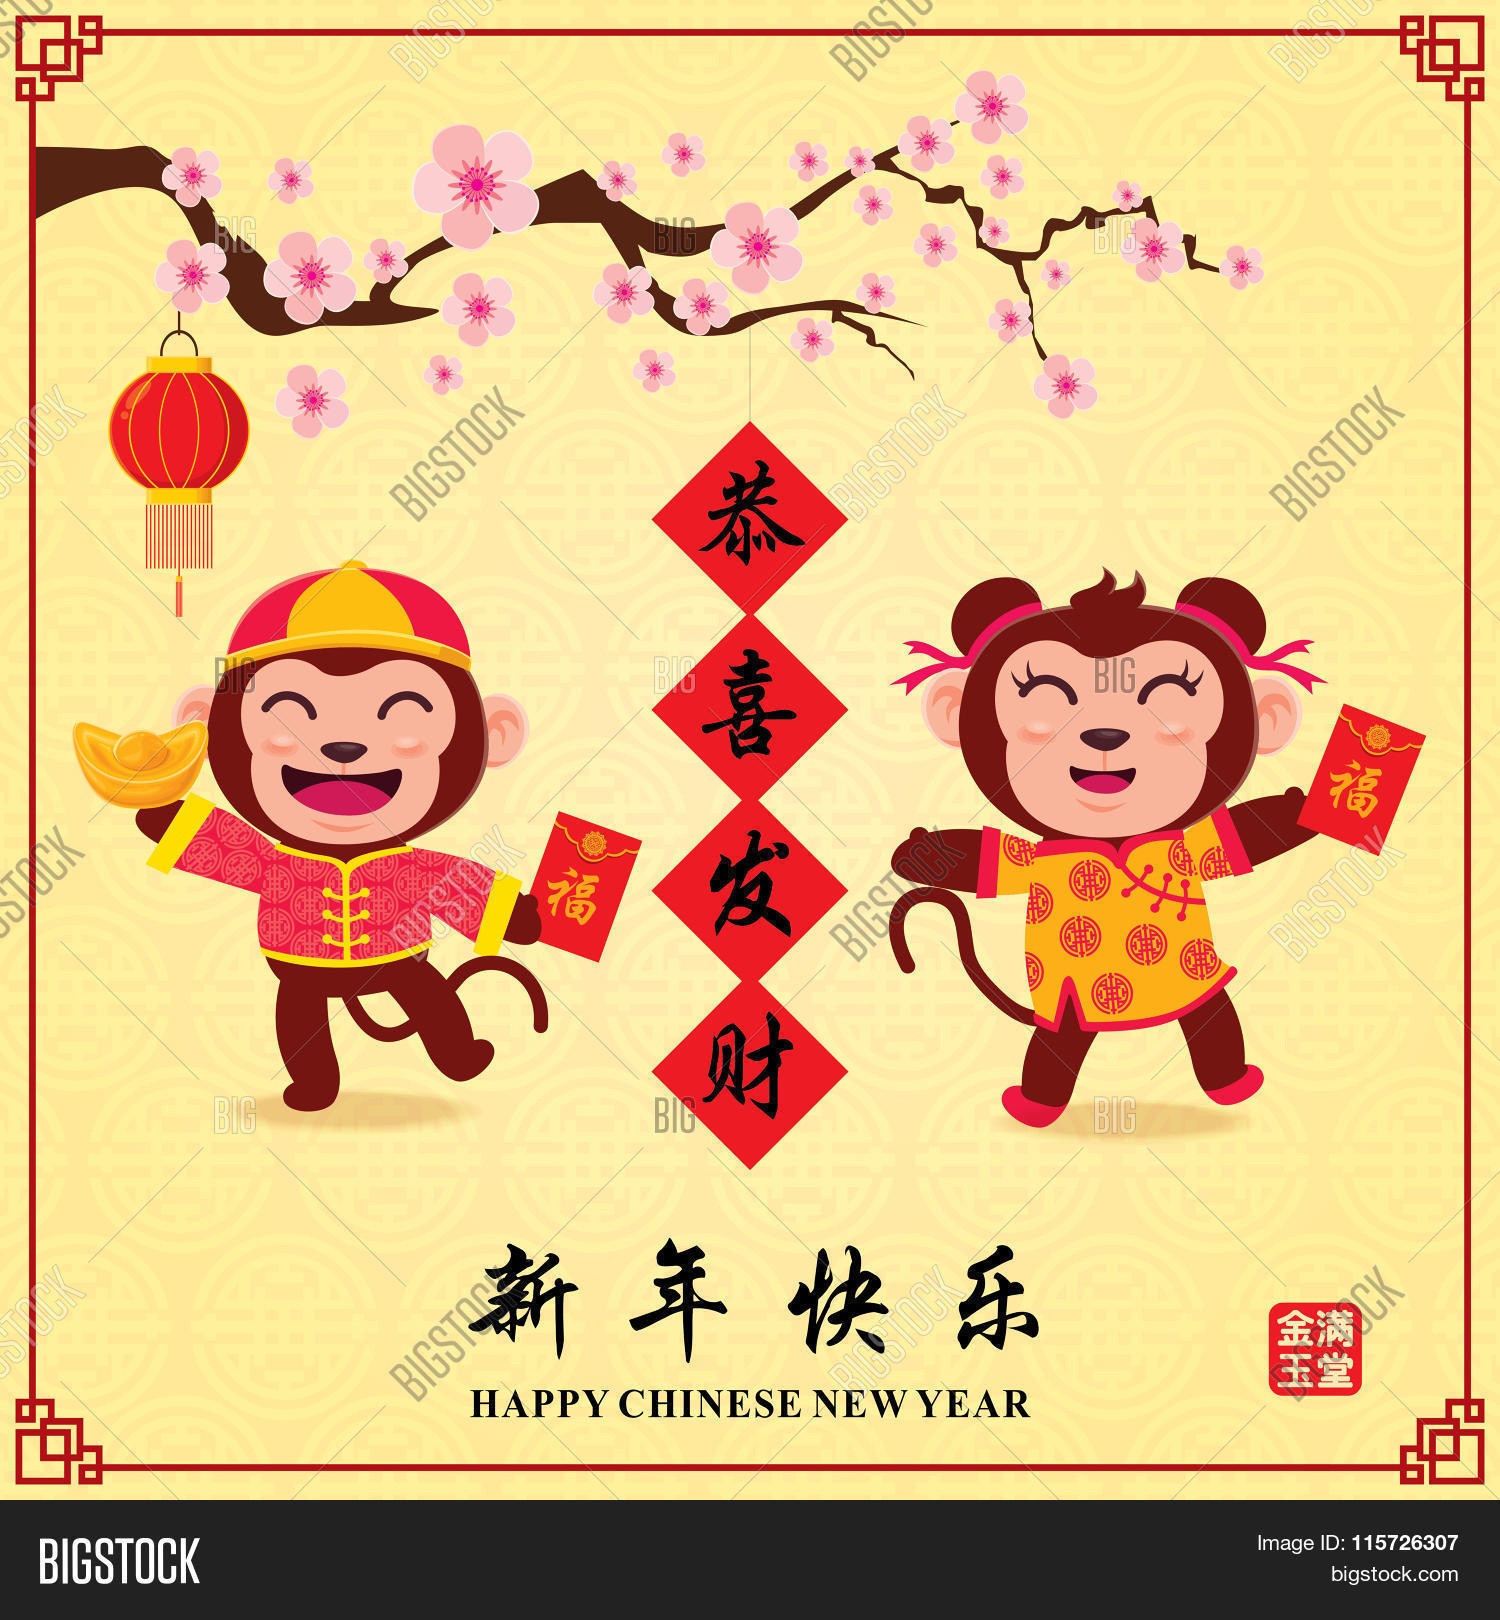 Vintage Chinese Calendar : Vintage chinese new year poster vector photo bigstock